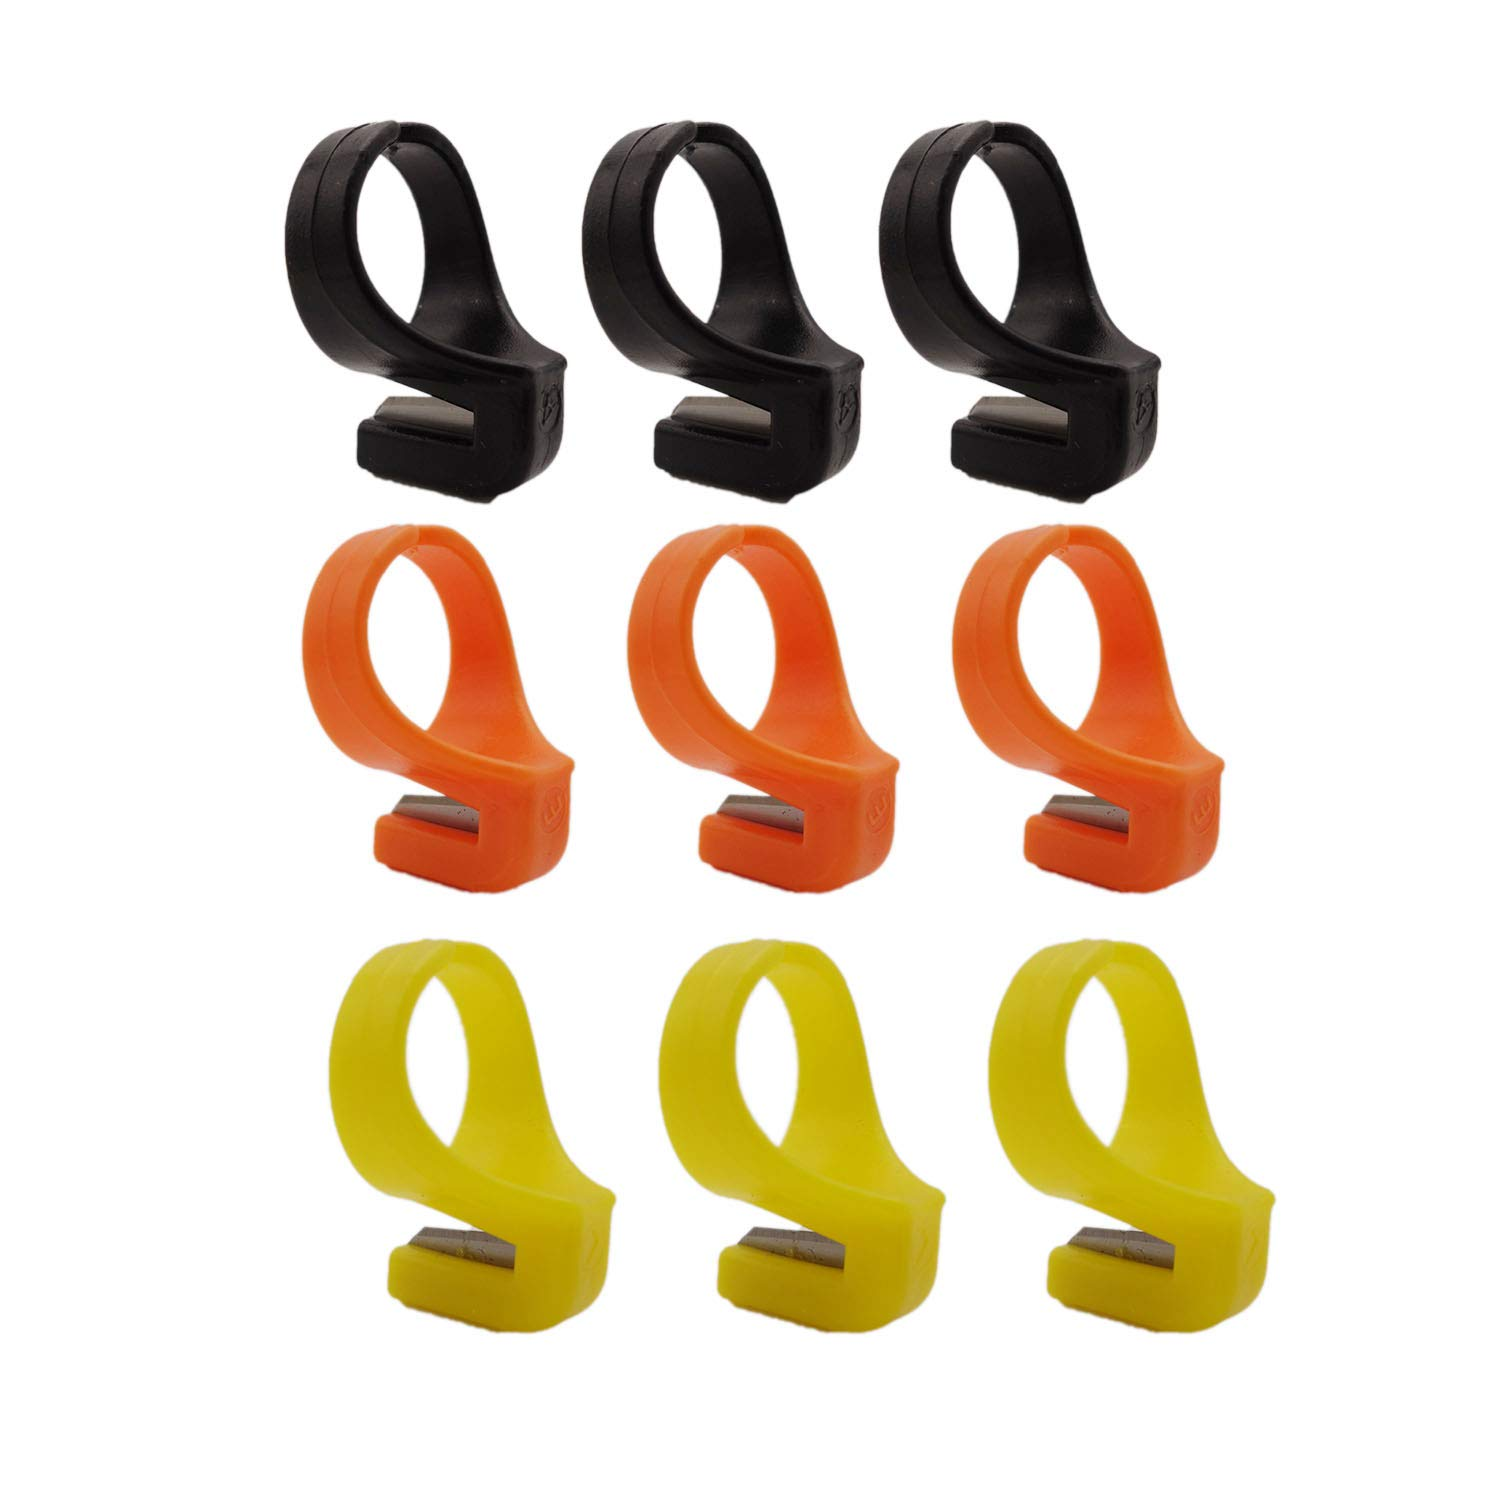 9 pcs Plastic Quilting Sewing Thread Cutter Ring Line Finger Cutting Tool for Yarn, Thread - Random Color